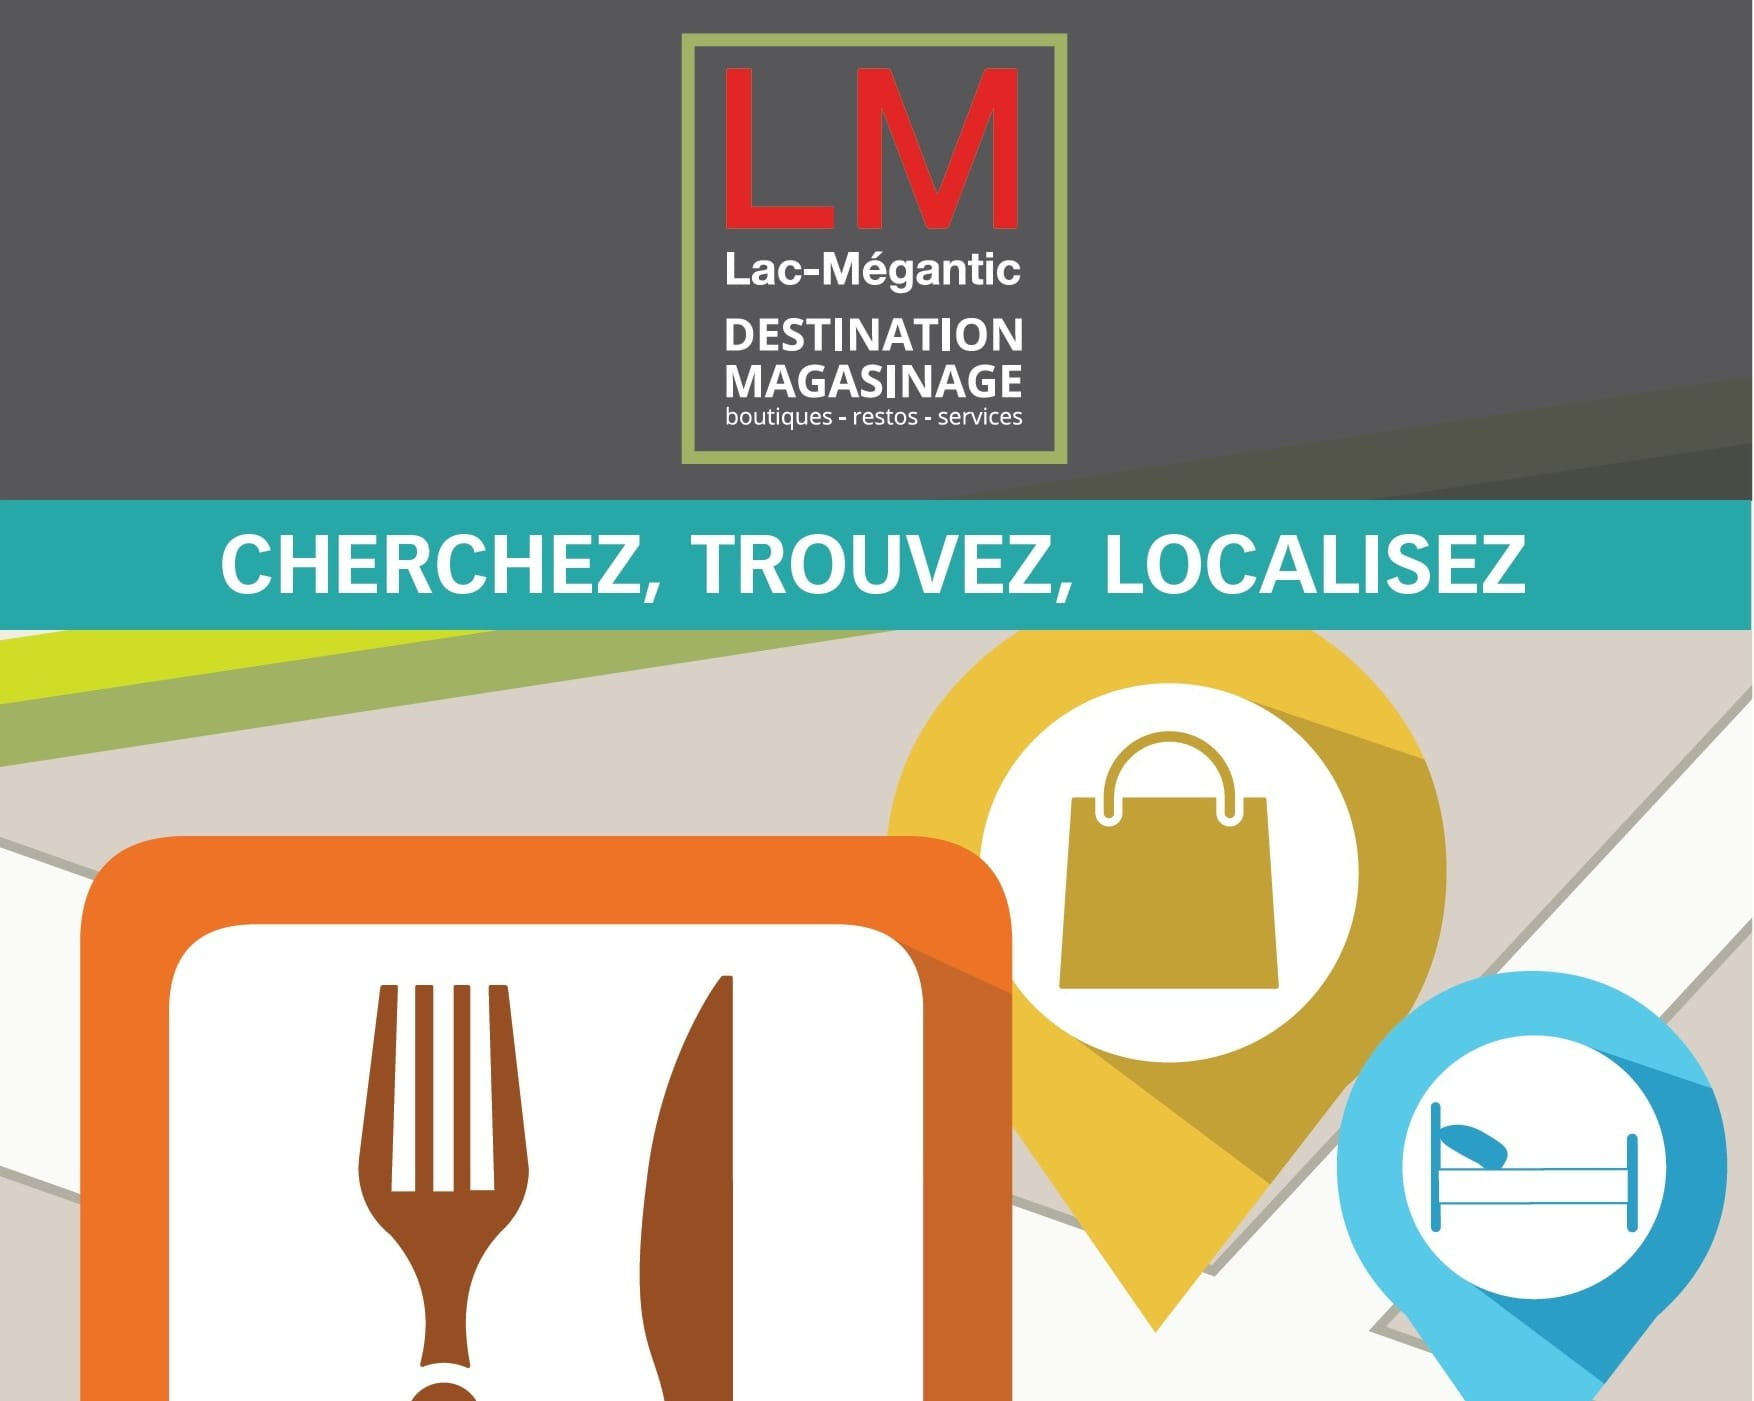 Boutiques, restaurants, and services in Lac-Mégantic